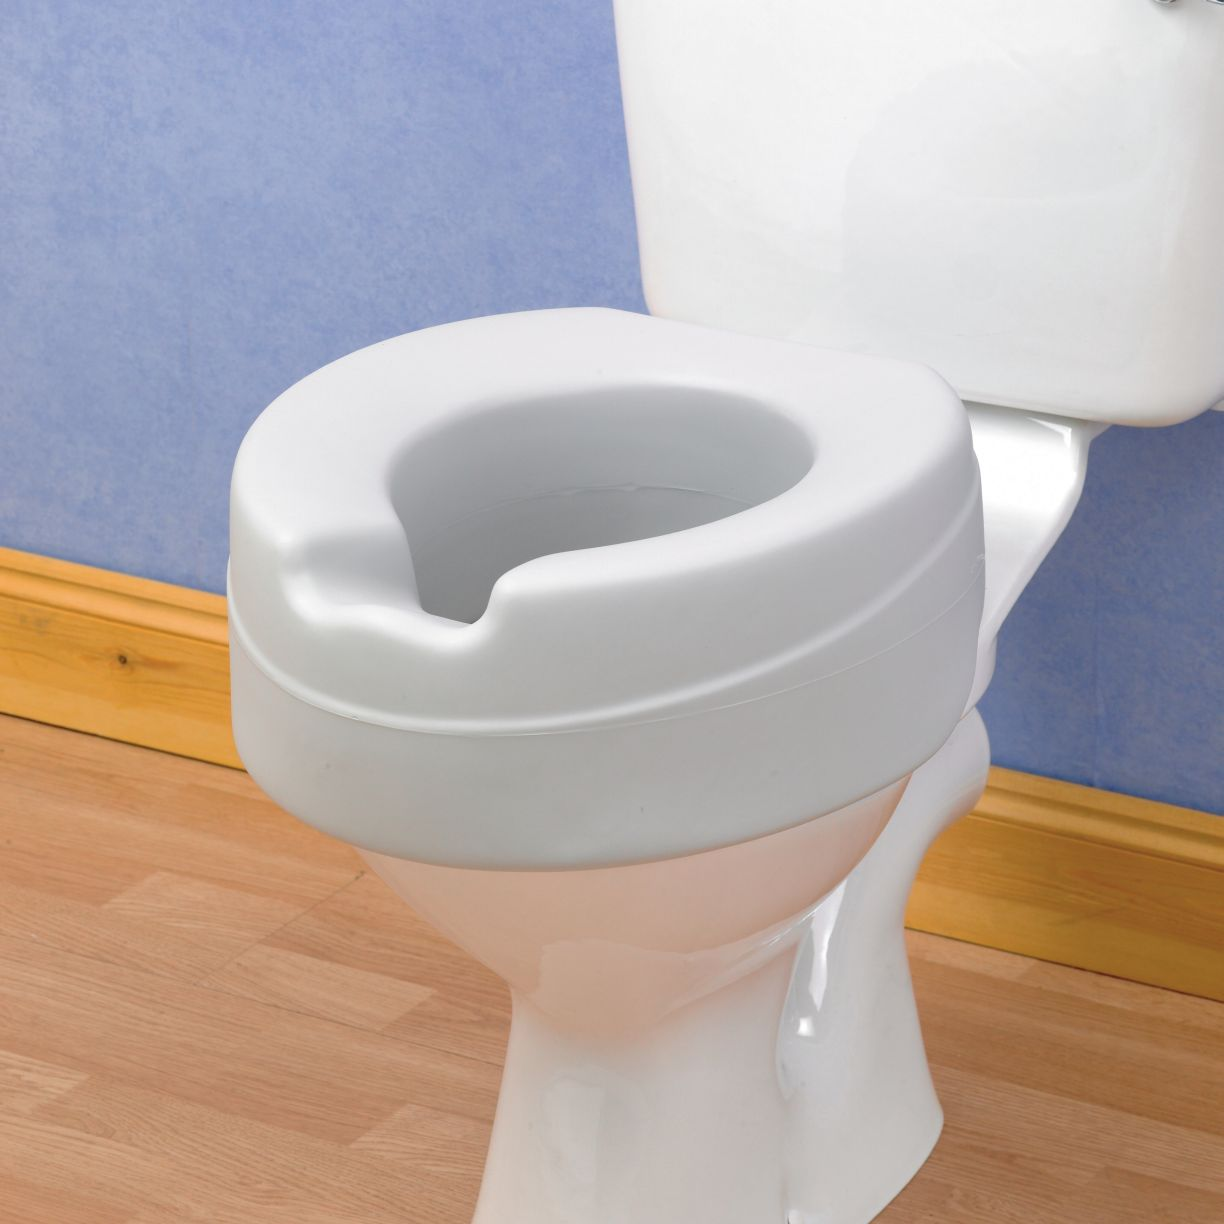 raised toilet seat comfyfoam the mobility centre. Black Bedroom Furniture Sets. Home Design Ideas